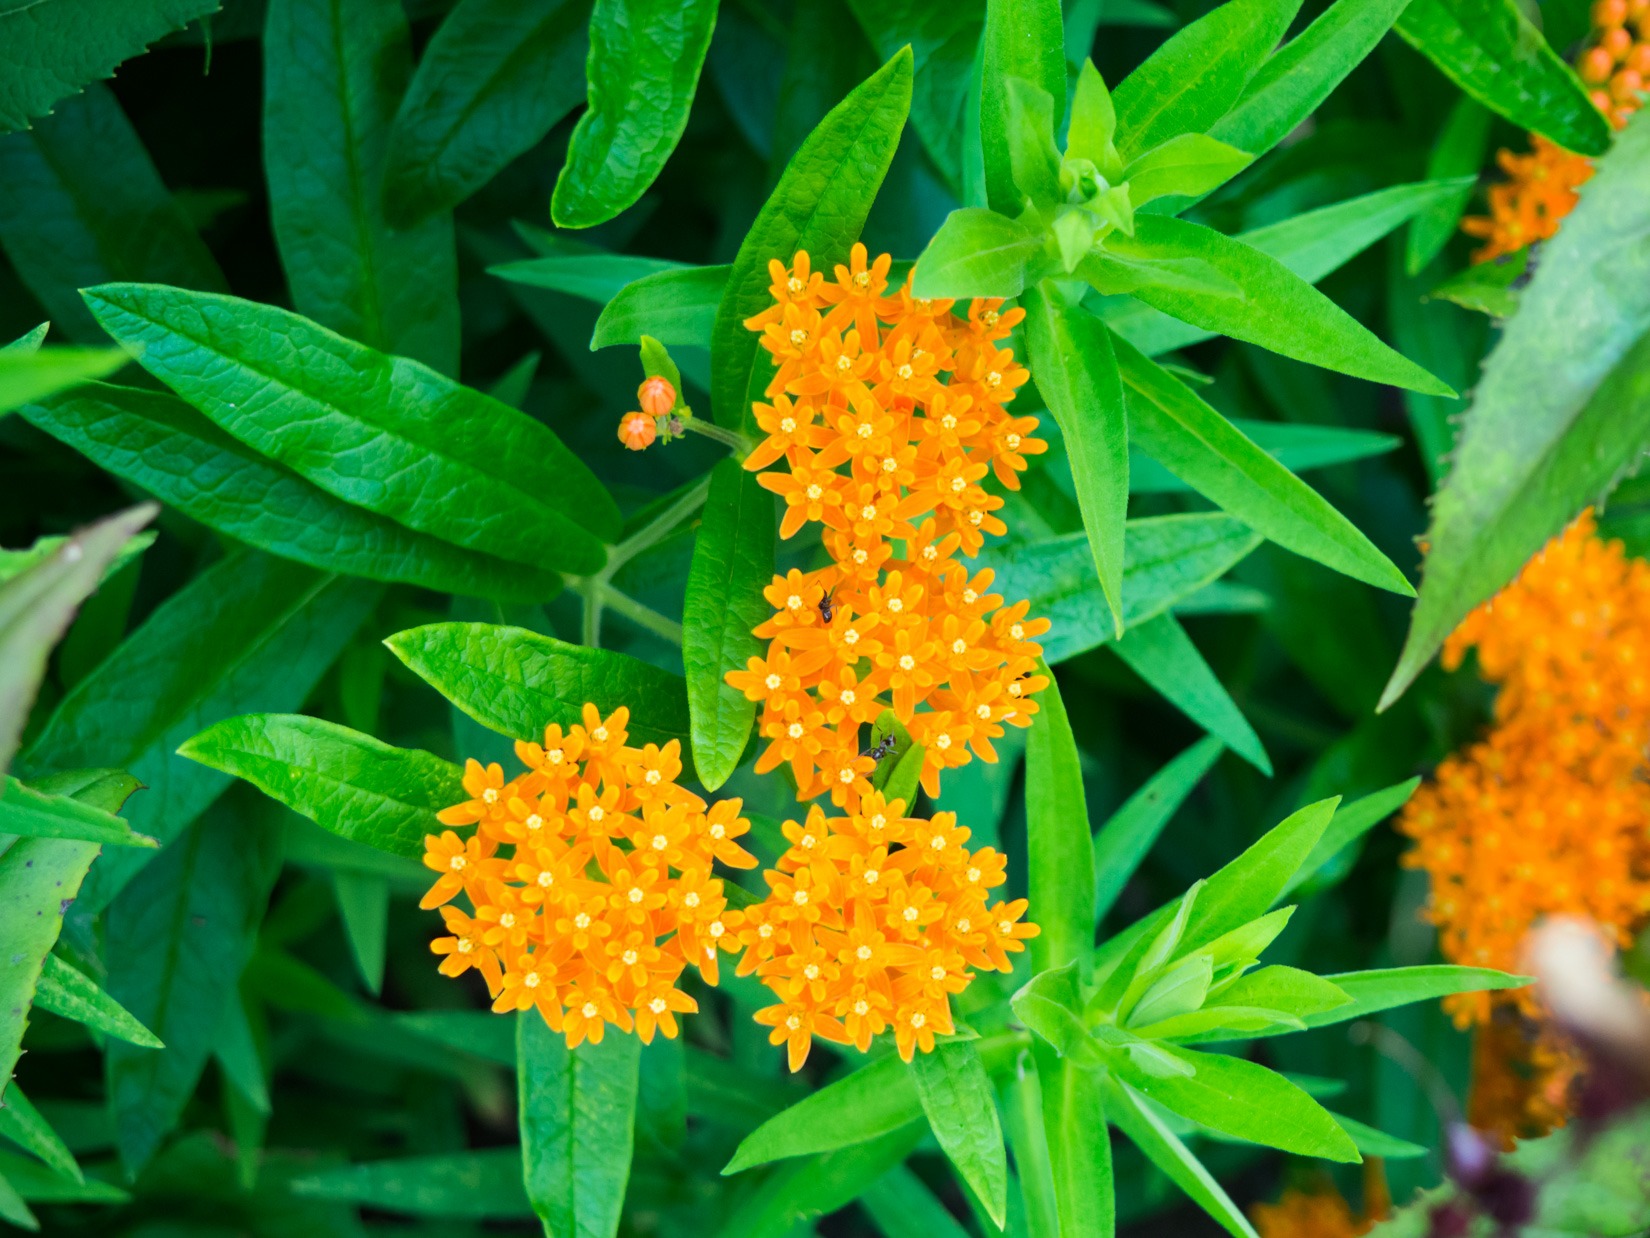 Orange Flowers with Ants